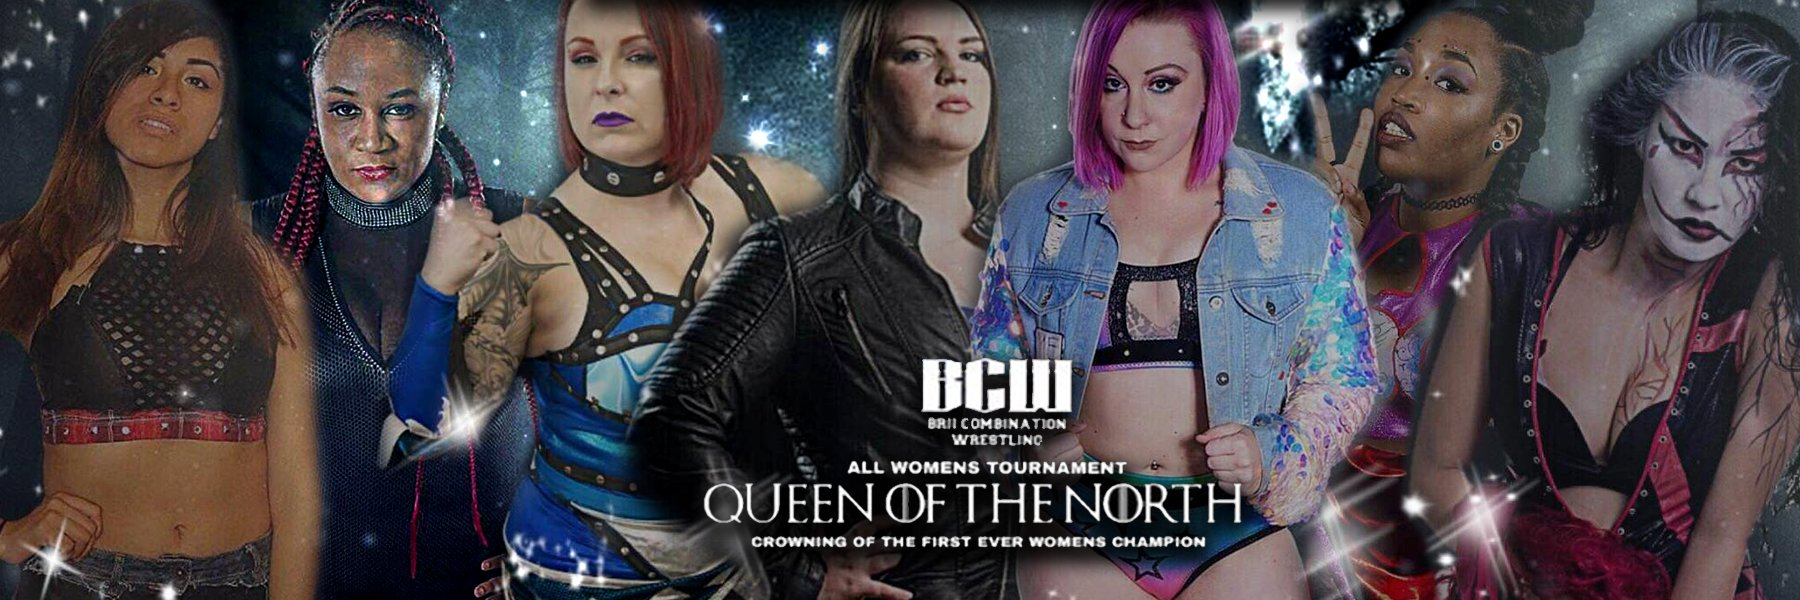 "BCW ""Queen of the North"" 2019 - Faye Jackson, LuFisto, Su Yung, Kimber Lee"